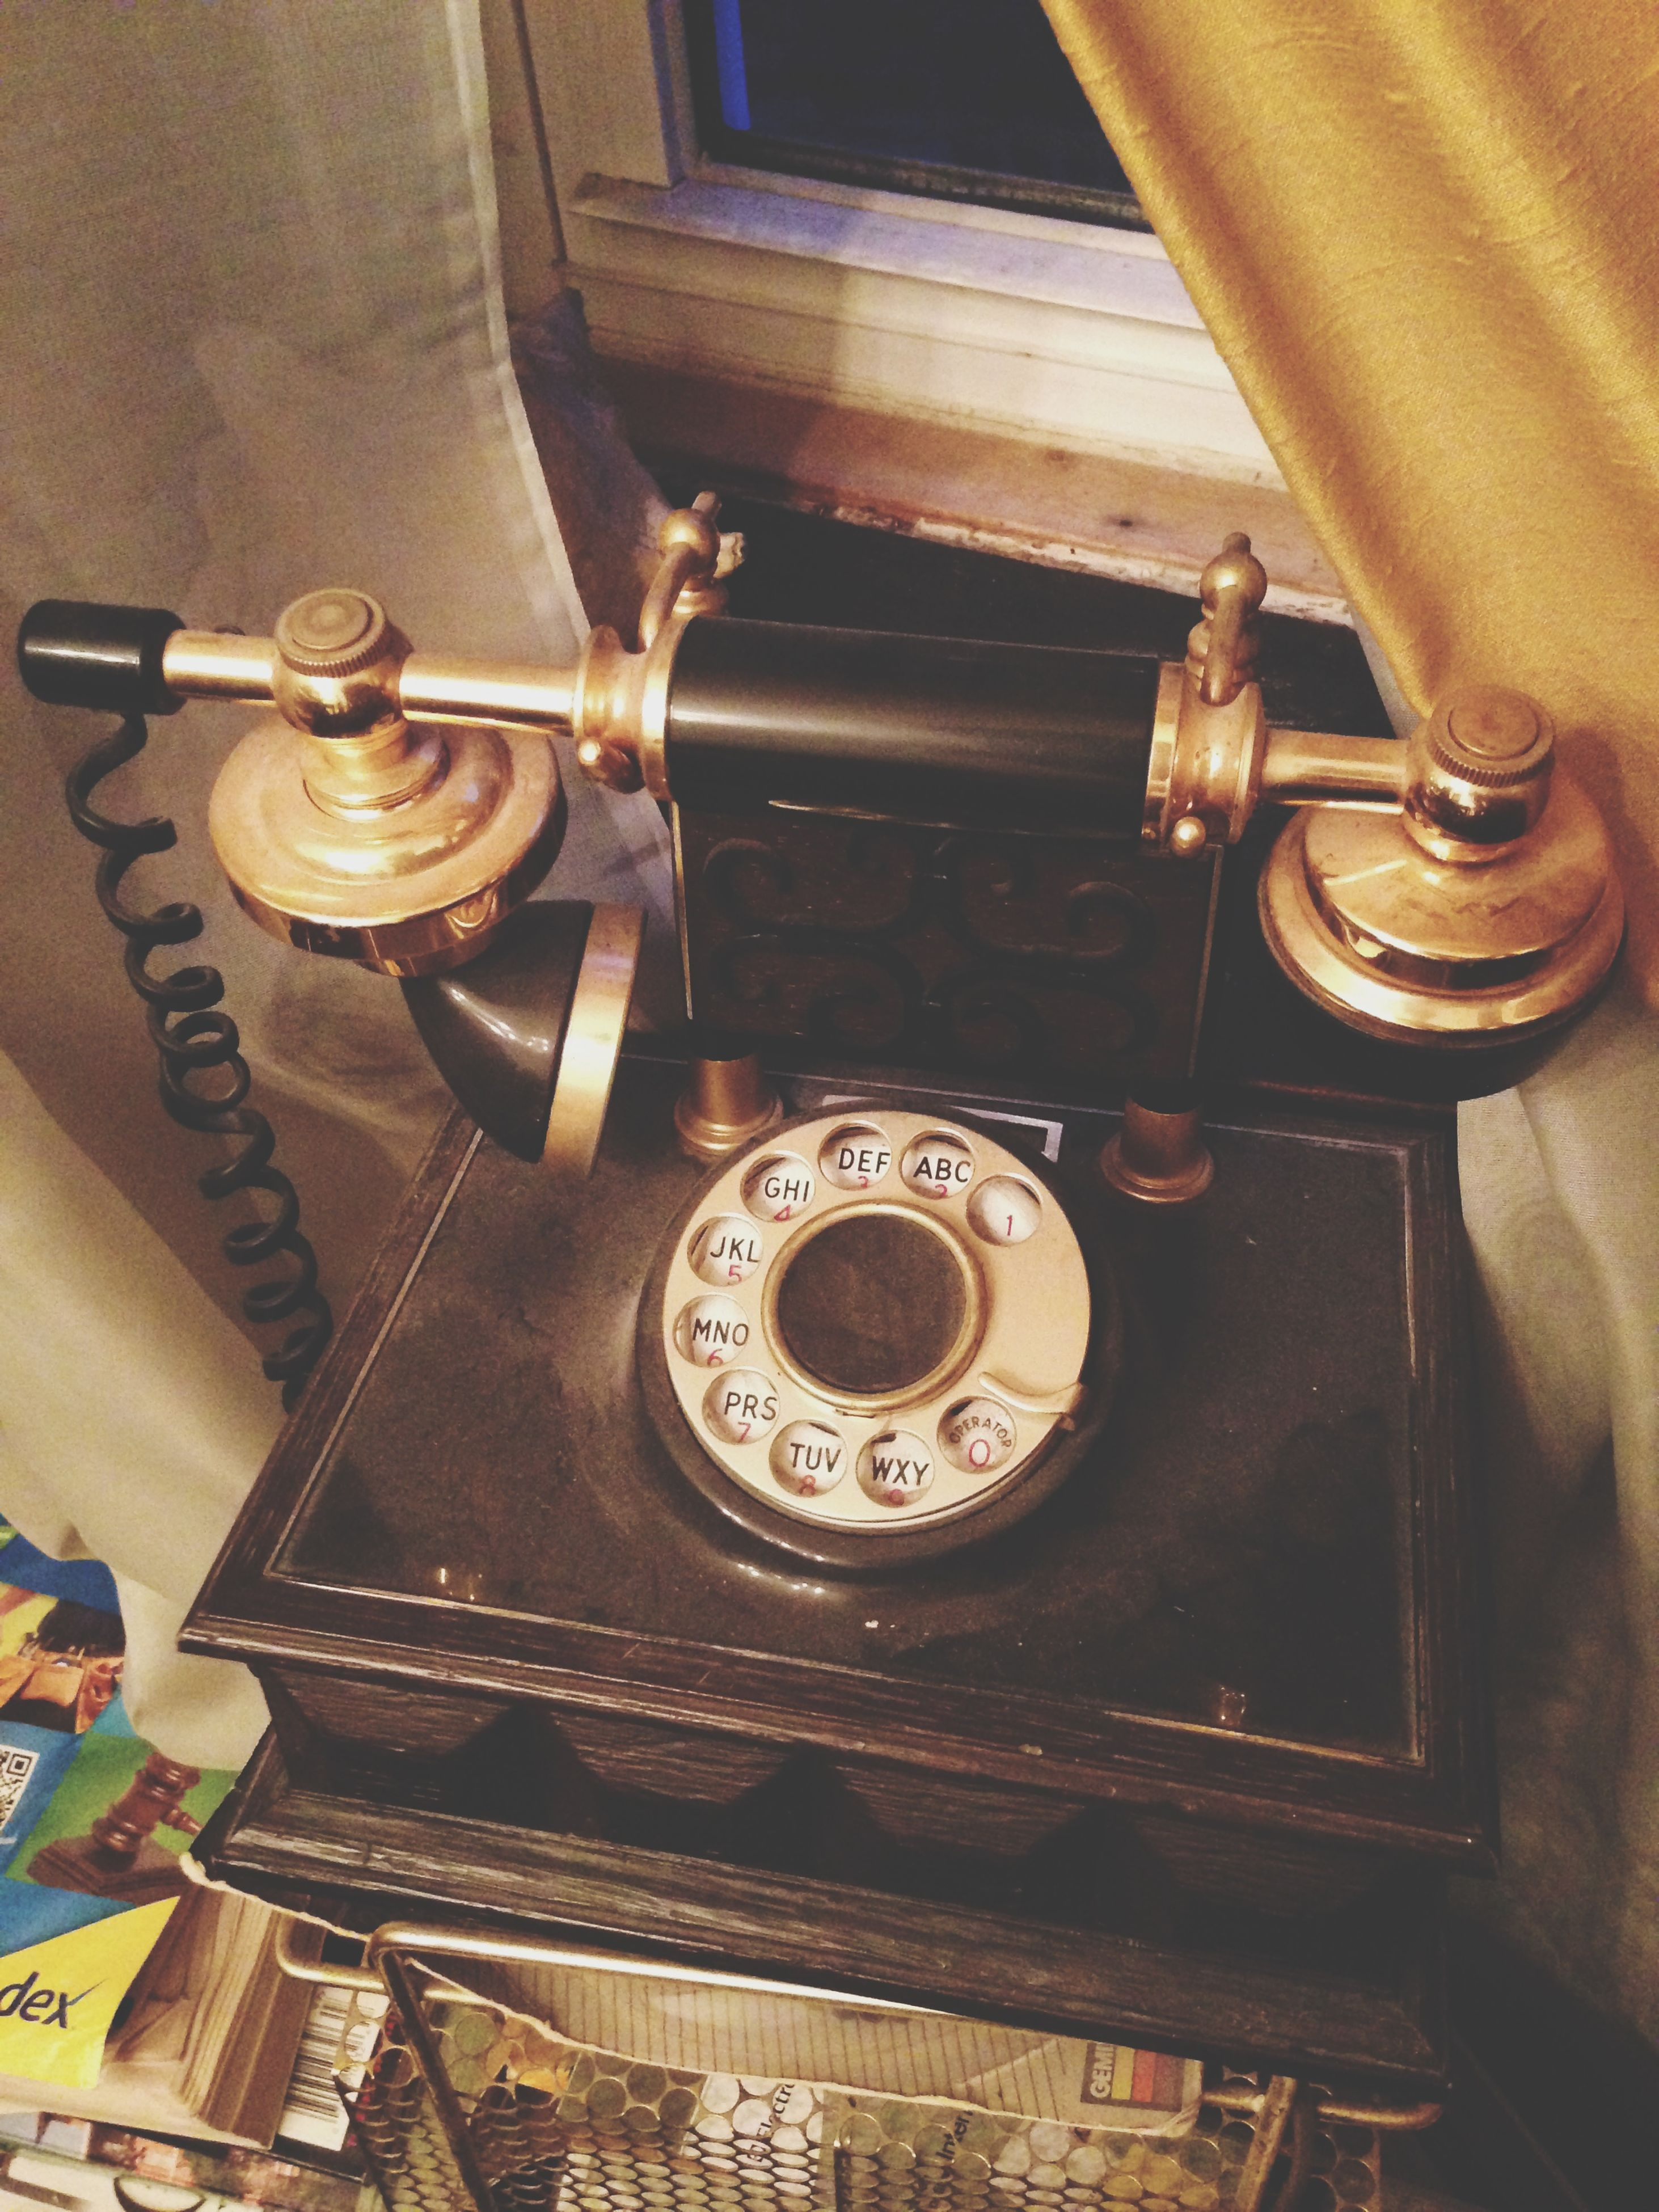 indoors, technology, old-fashioned, retro styled, metal, antique, close-up, connection, old, still life, telephone, equipment, table, communication, machinery, number, high angle view, machine part, vintage, metallic